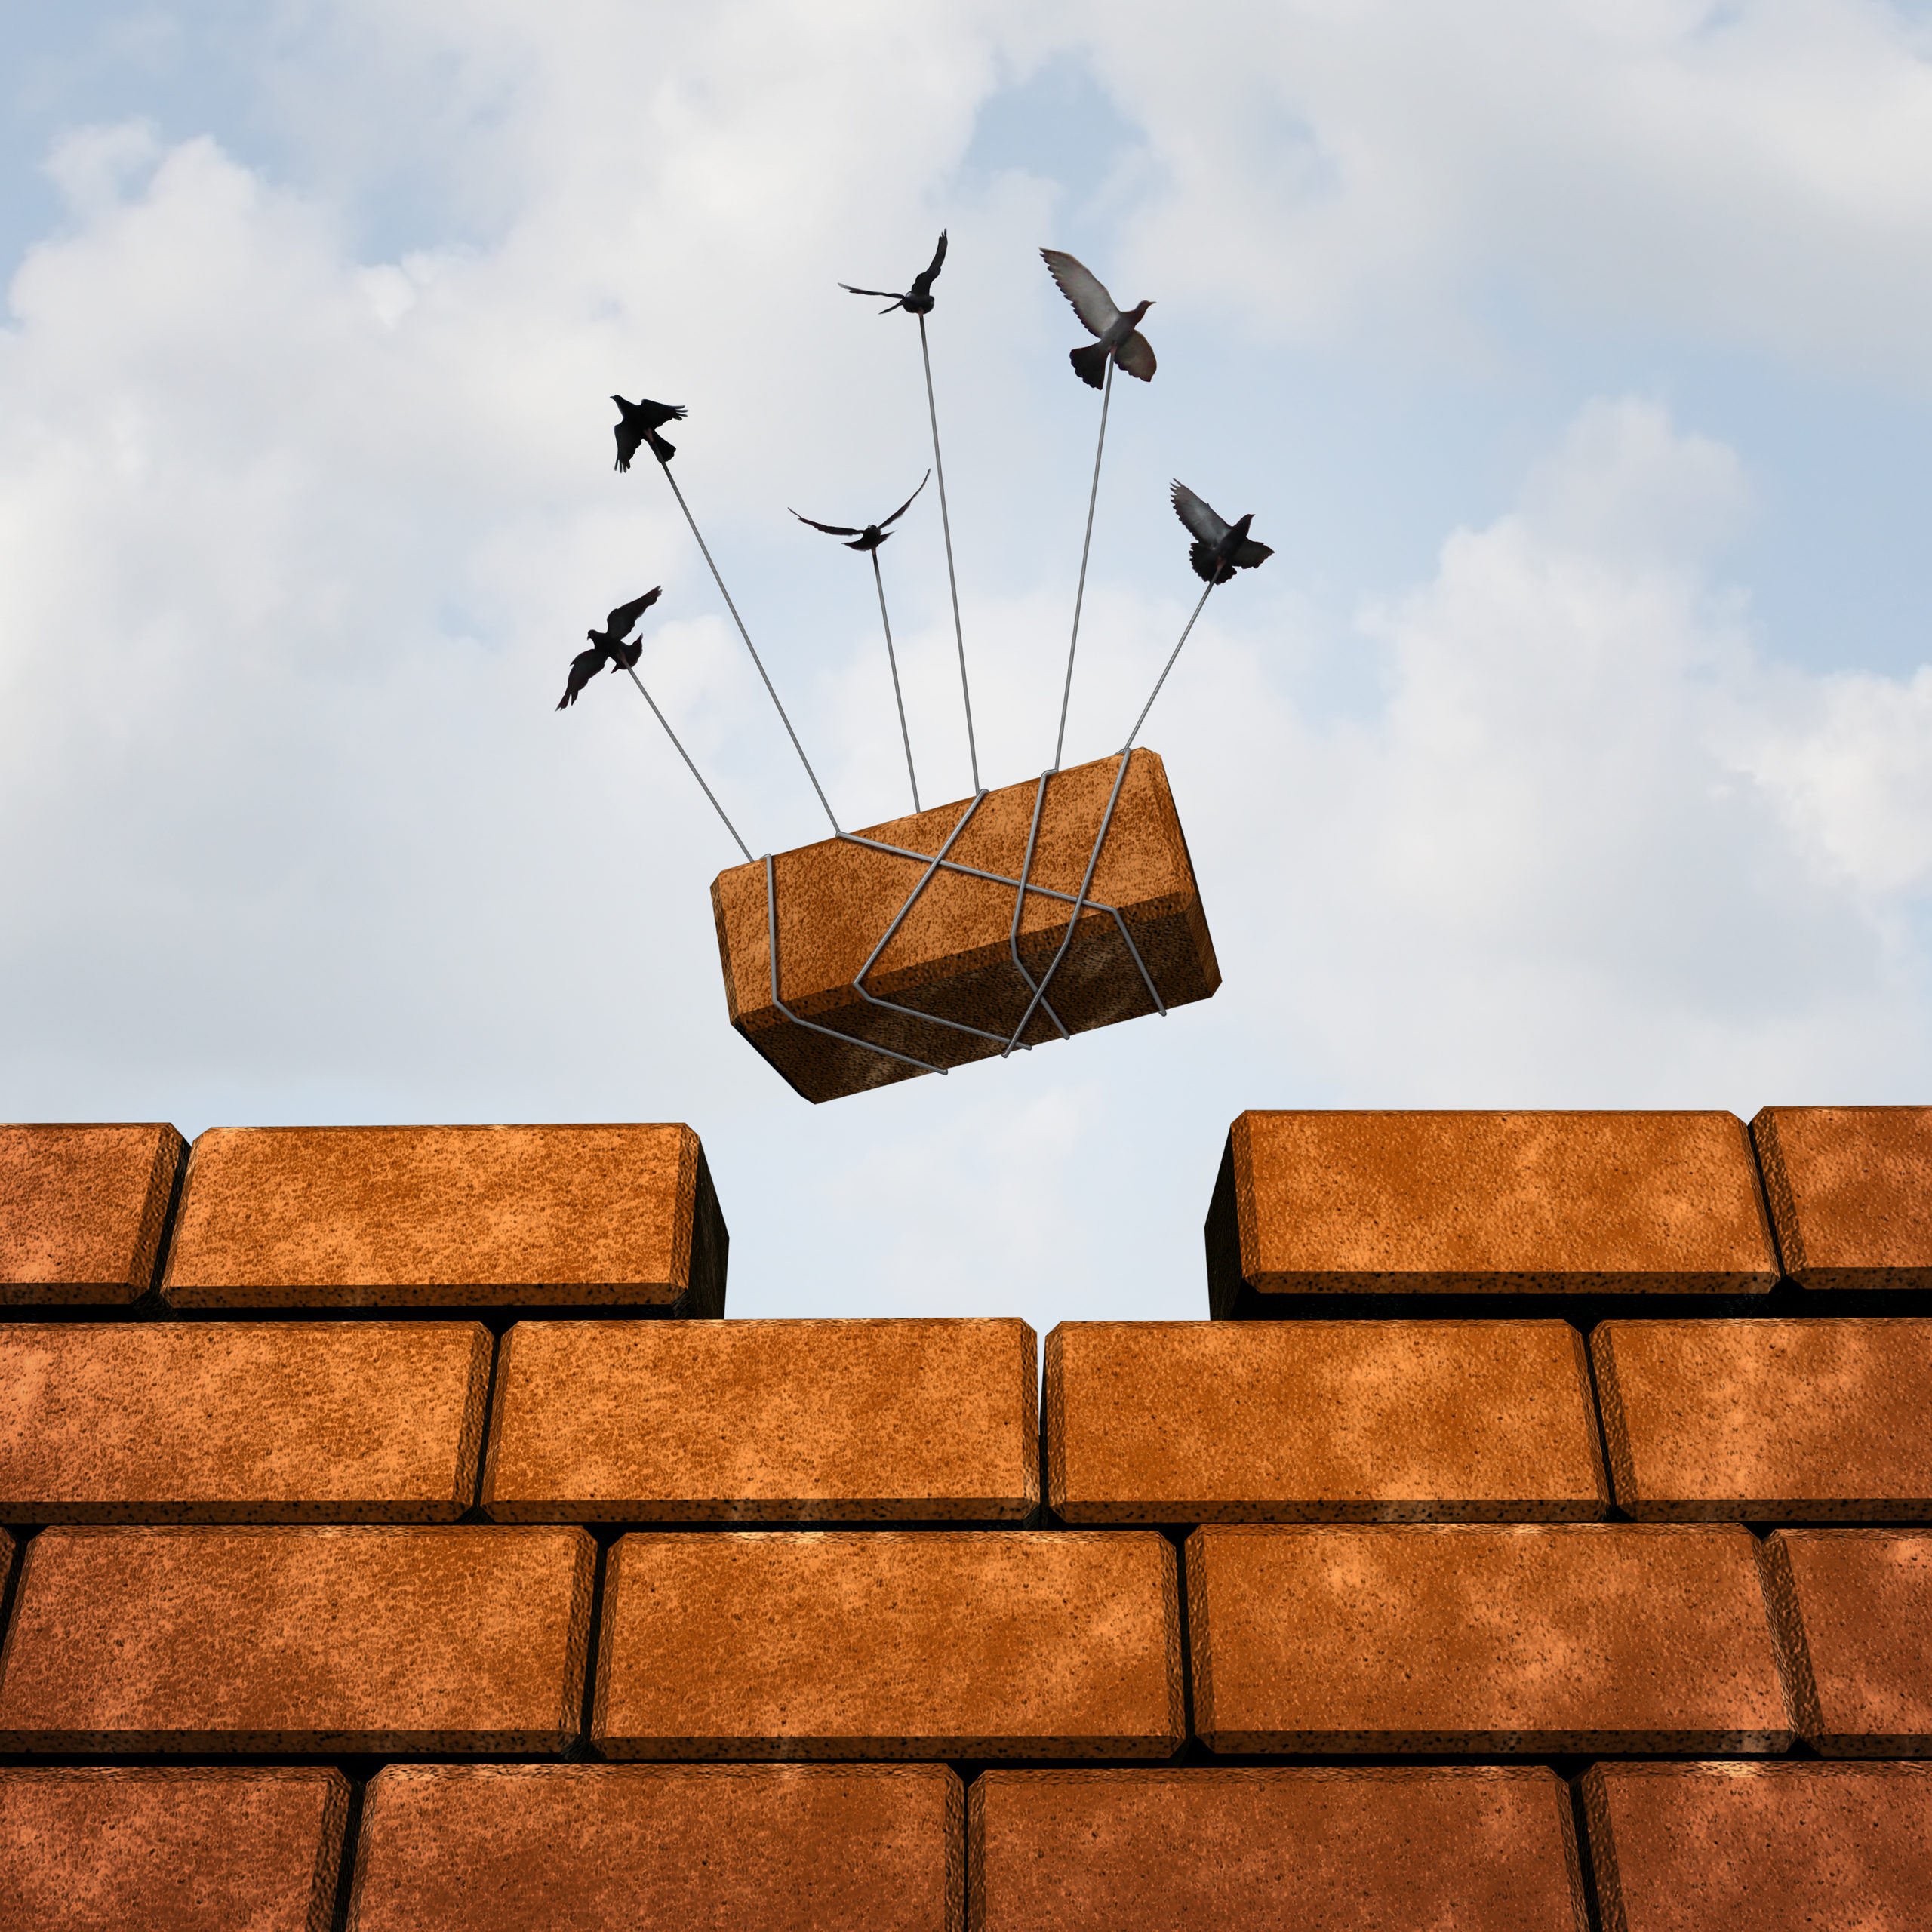 Build,A,Wall,Business,Concept,Or,Removing,An,Obstacle,As